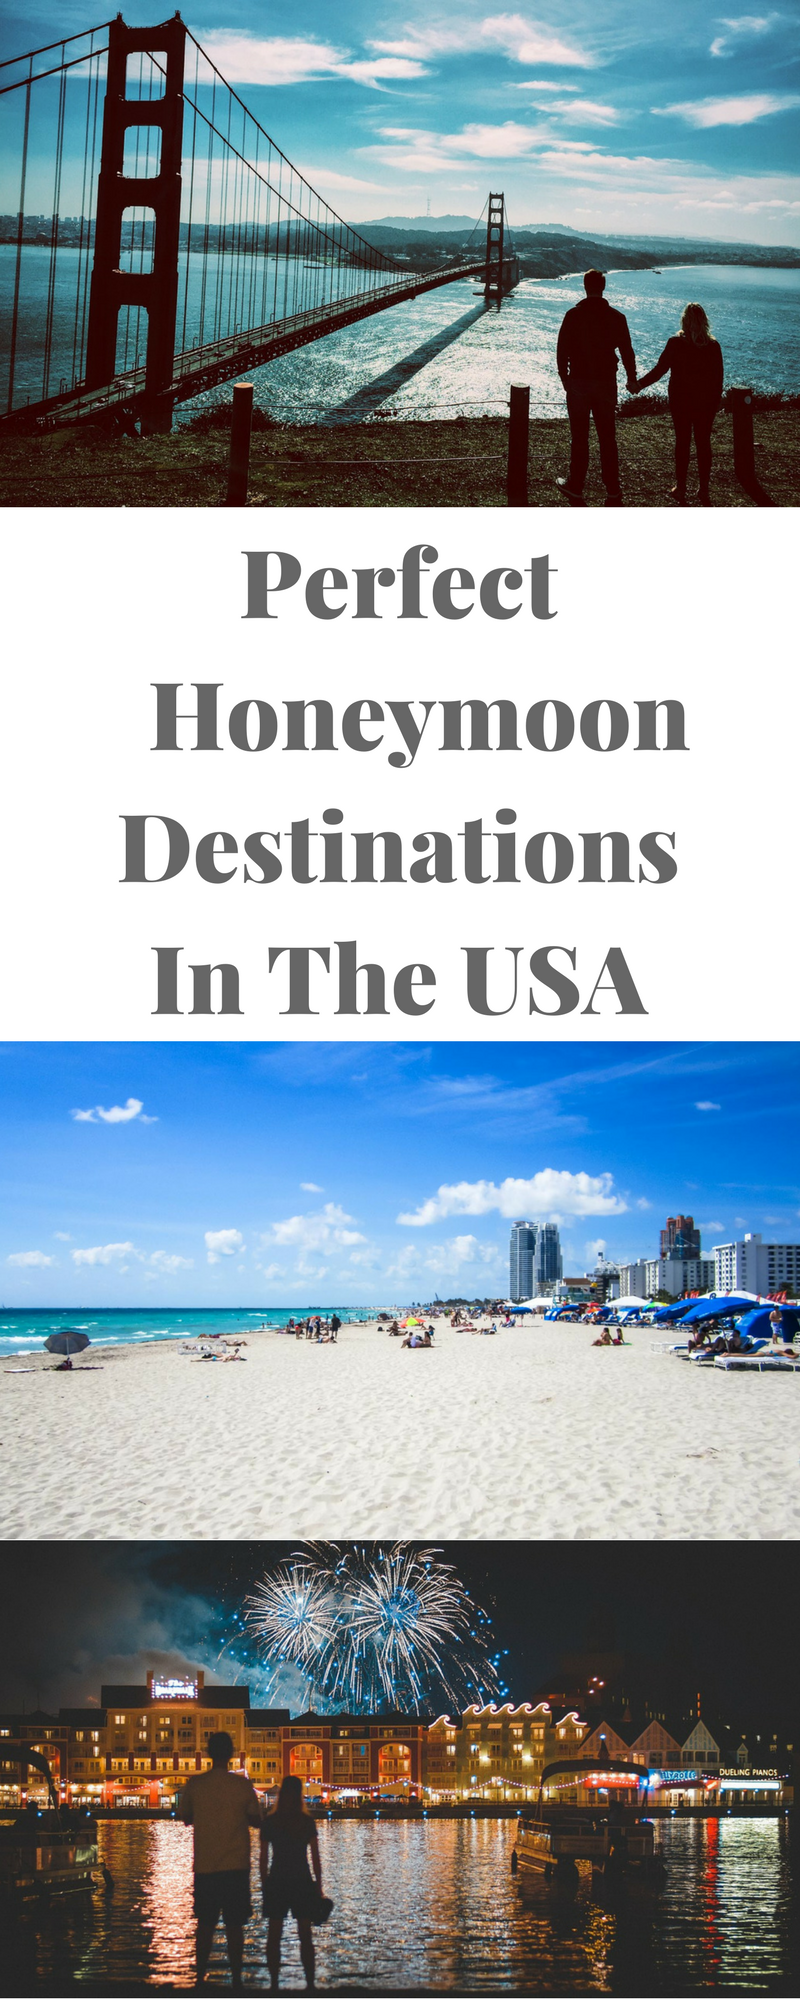 Perfect honeymoon destinations in the usa for Unique honeymoon destinations usa